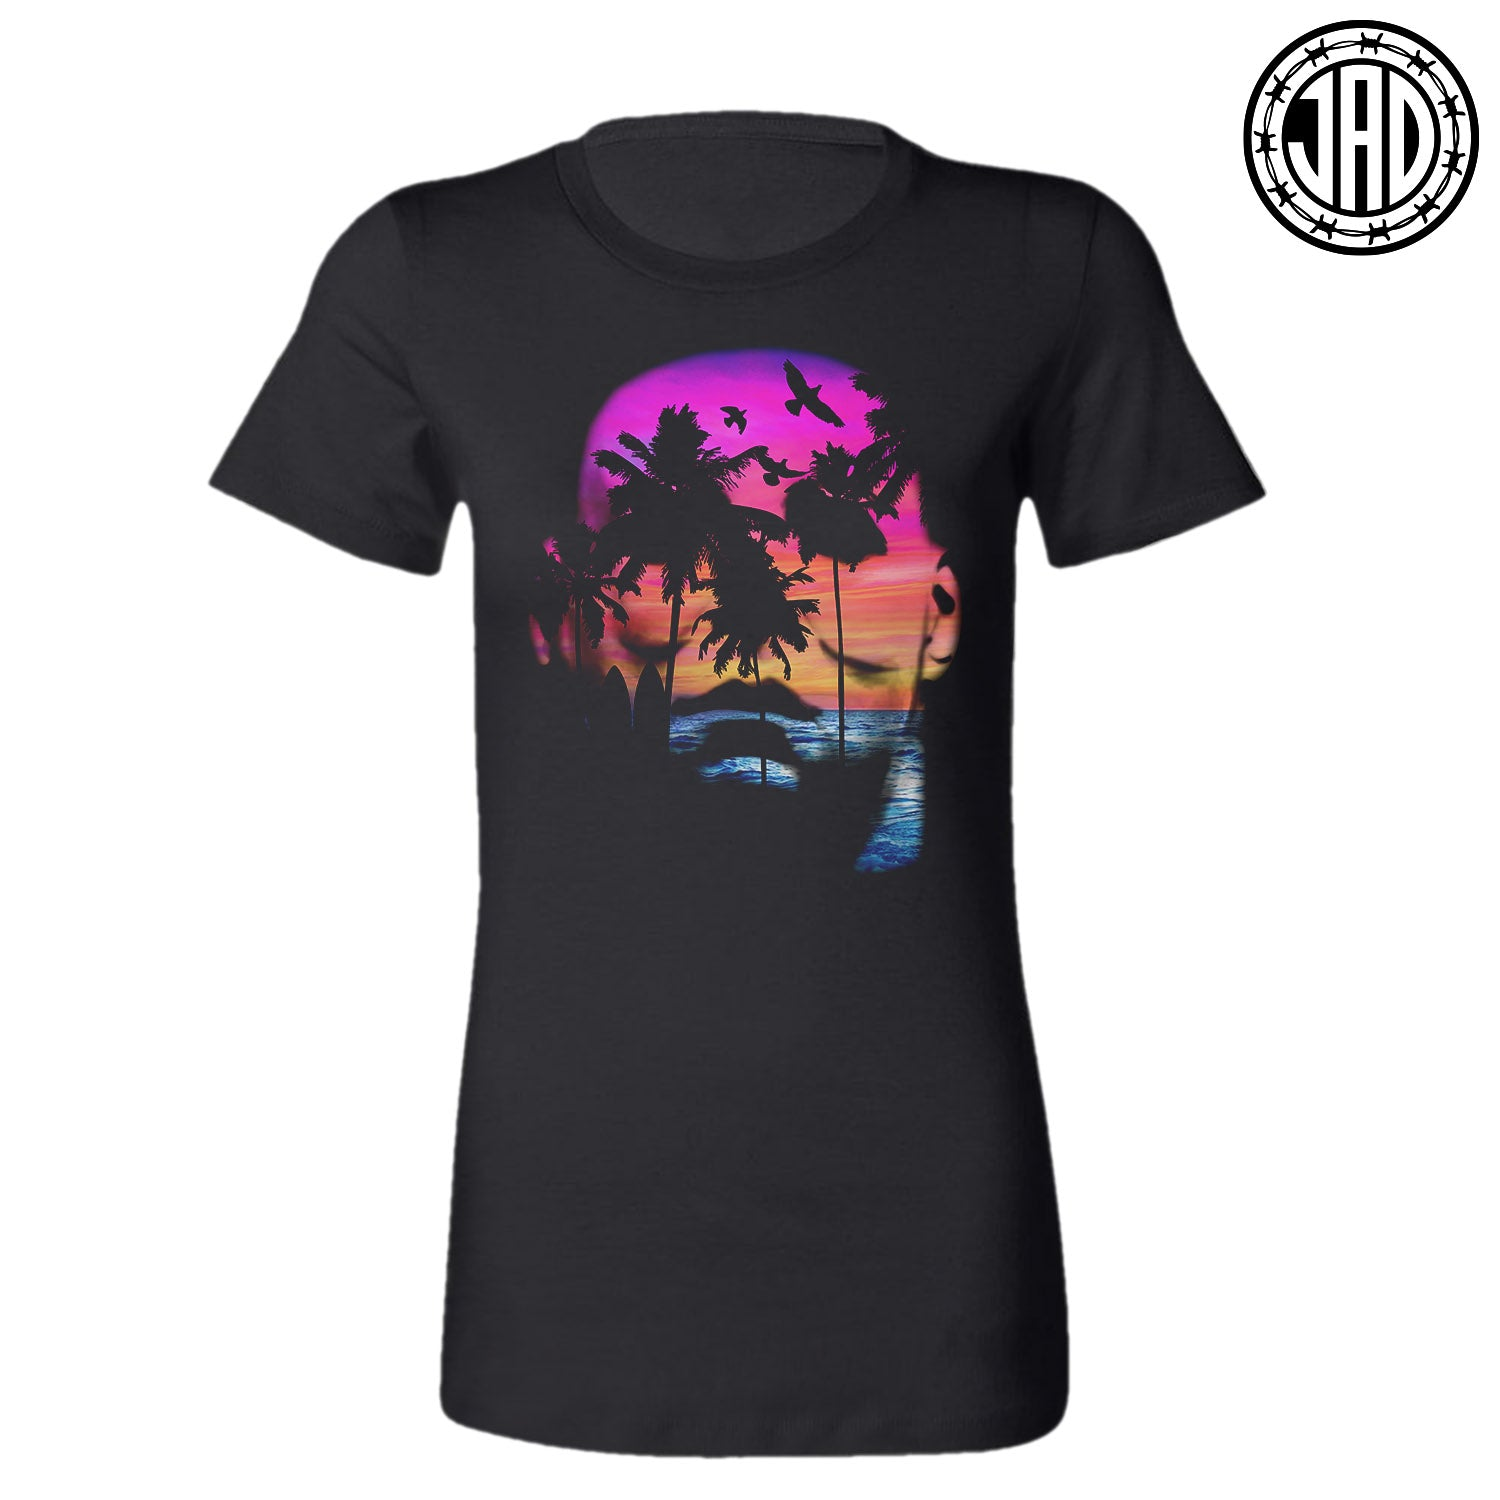 Big Island Mike - Women's Tee